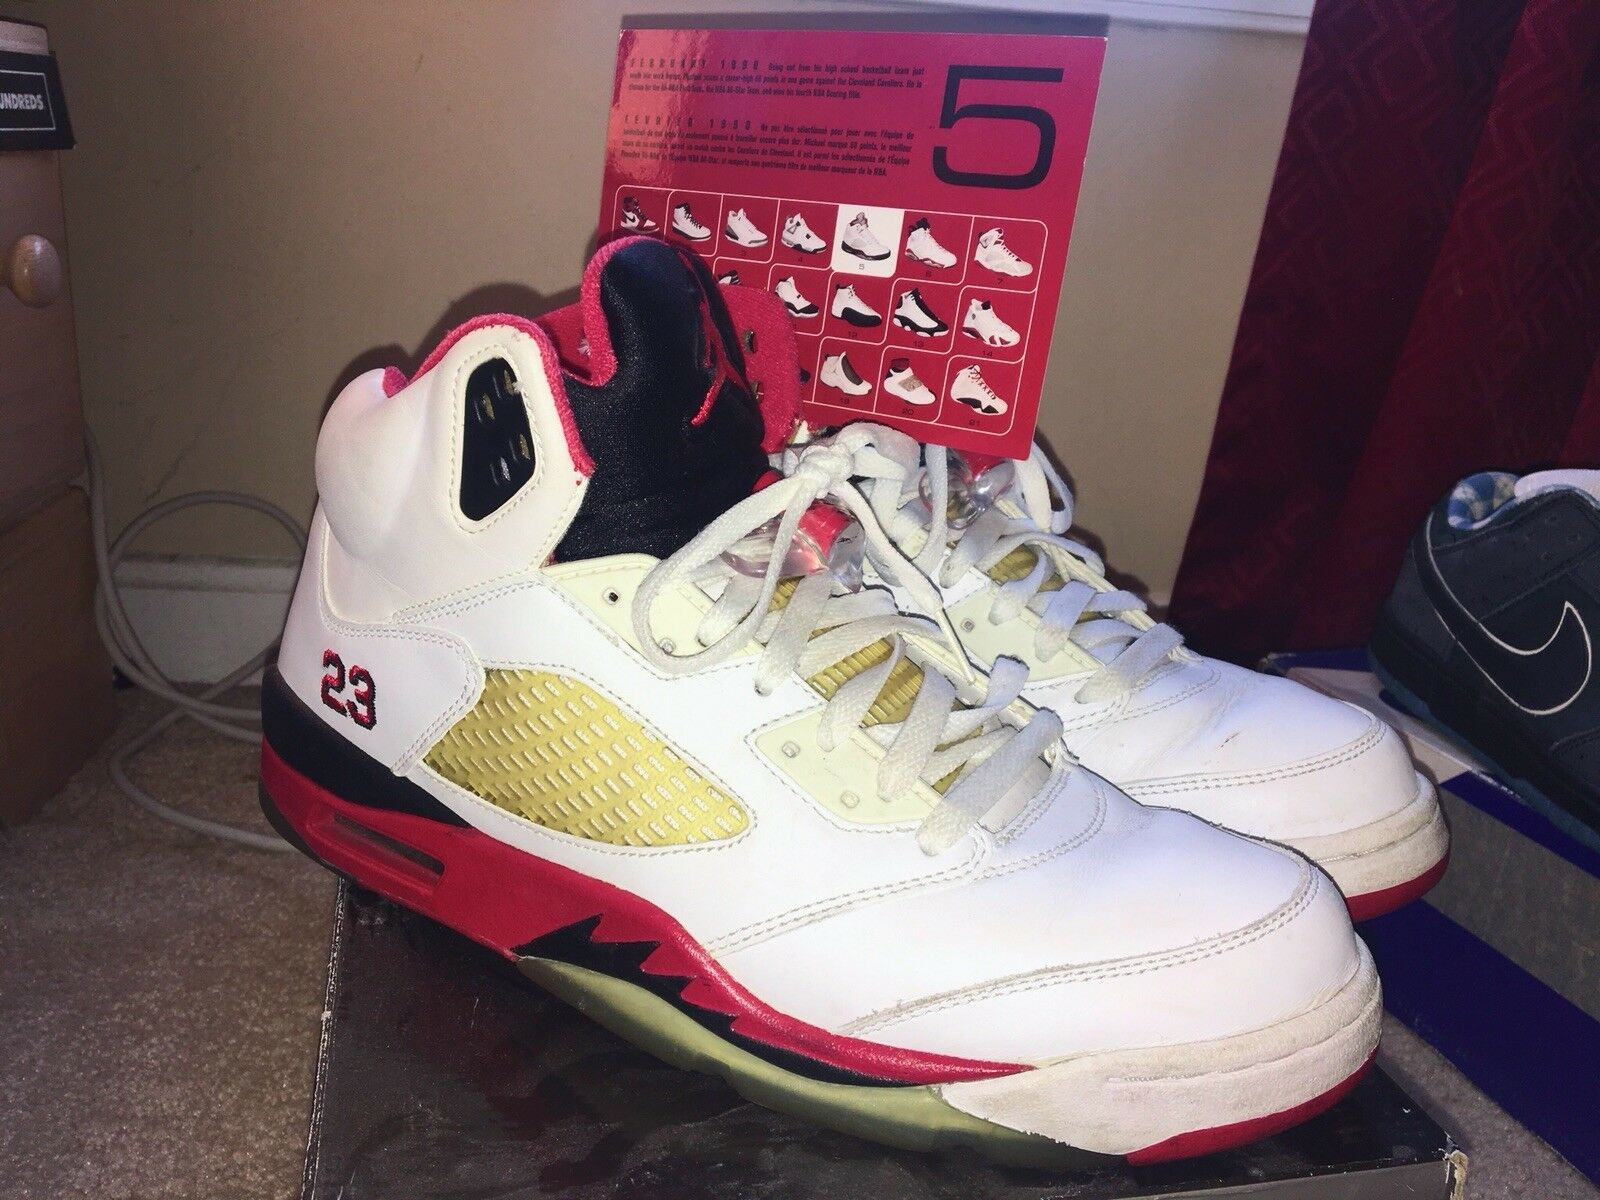 98edacdb004 Jordan Retro 5 2006 Fire 10.5 Men's OG Everything Red Size  nxrvkz1704-Athletic Shoes